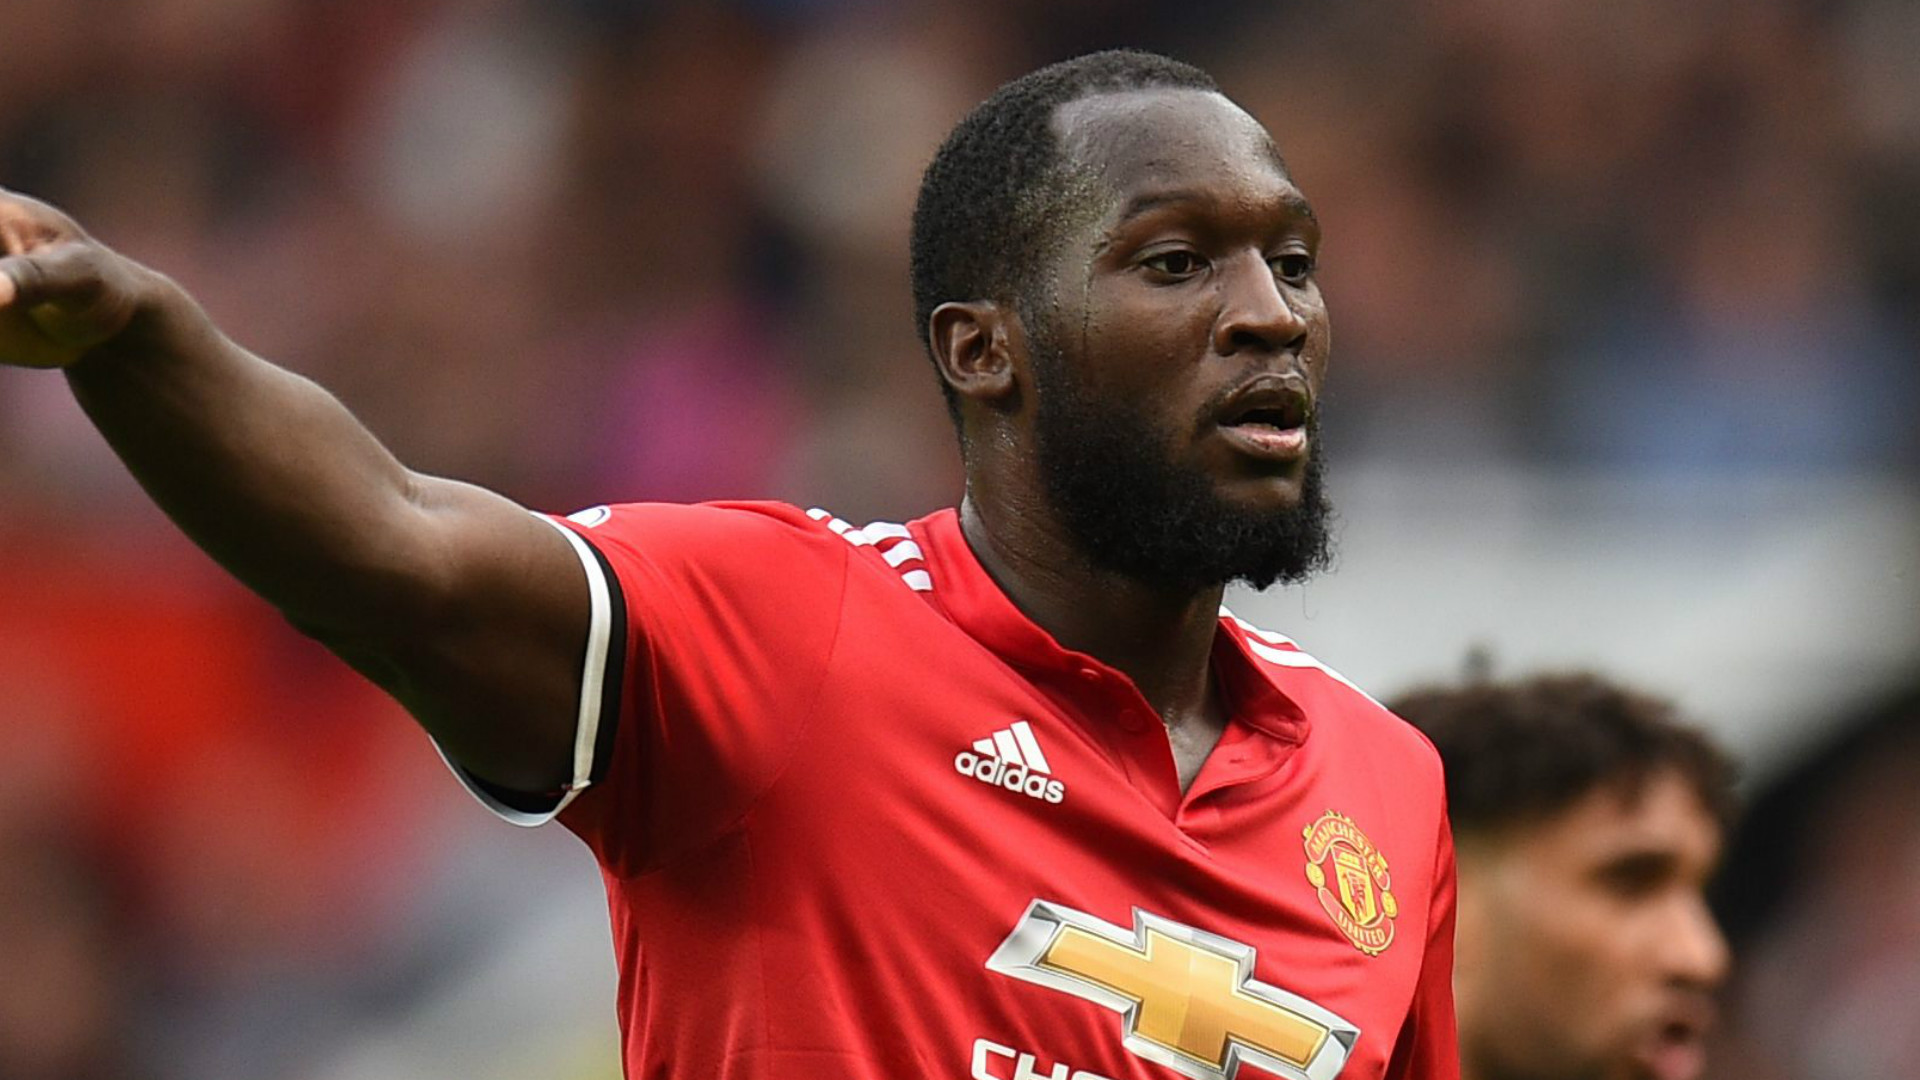 Lukaku can't rest until Ibrahimovic returns, says Mourinho